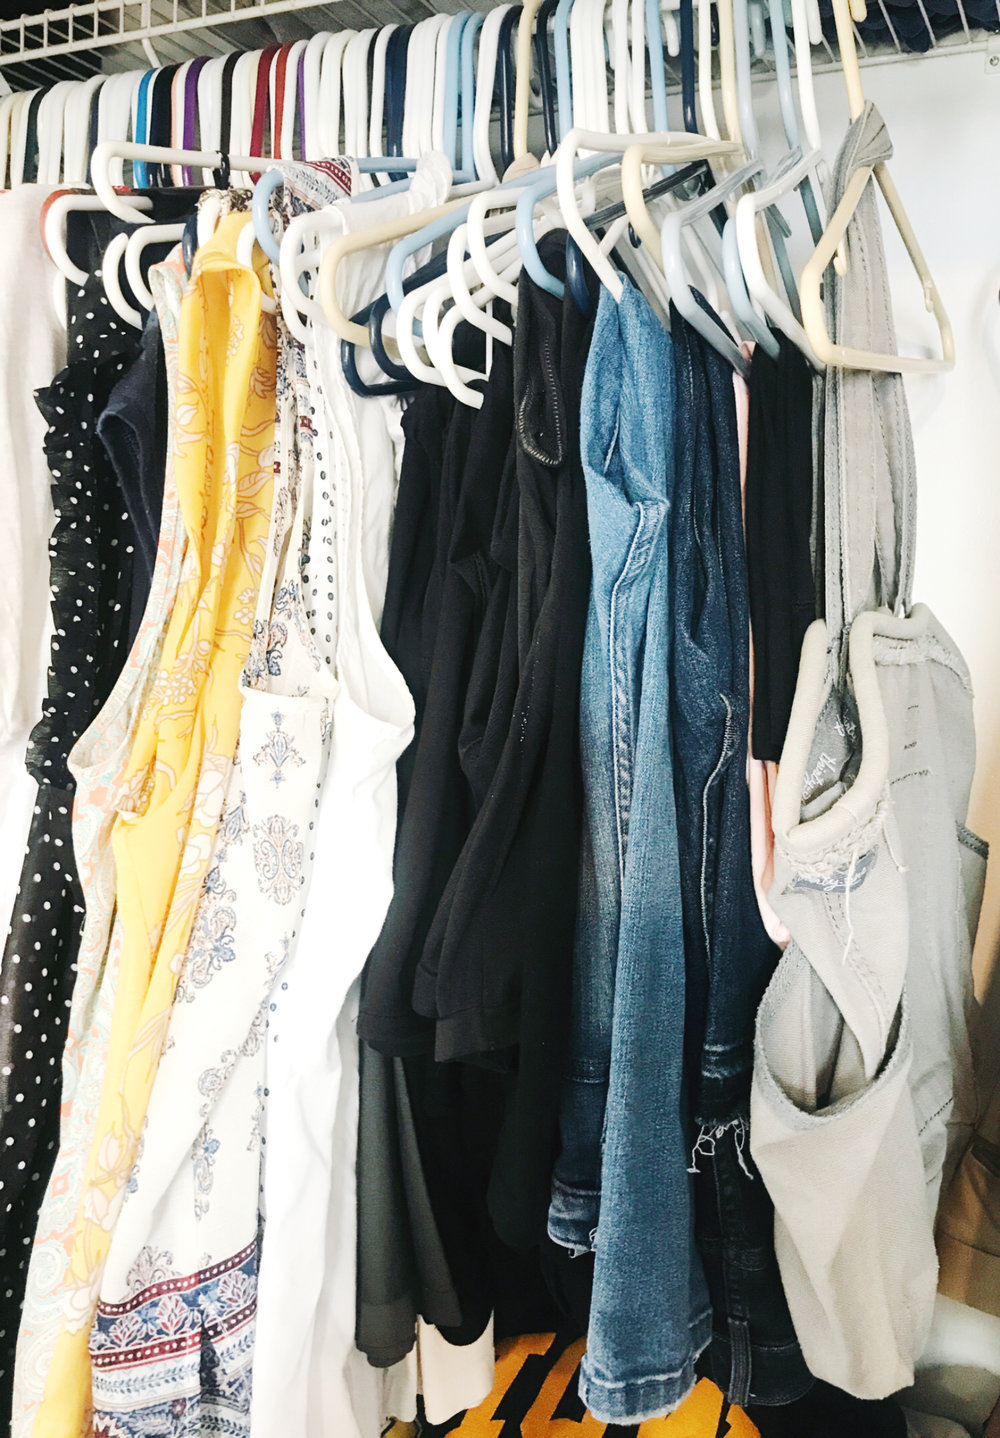 Organizing Your Closet from hprallandco.com